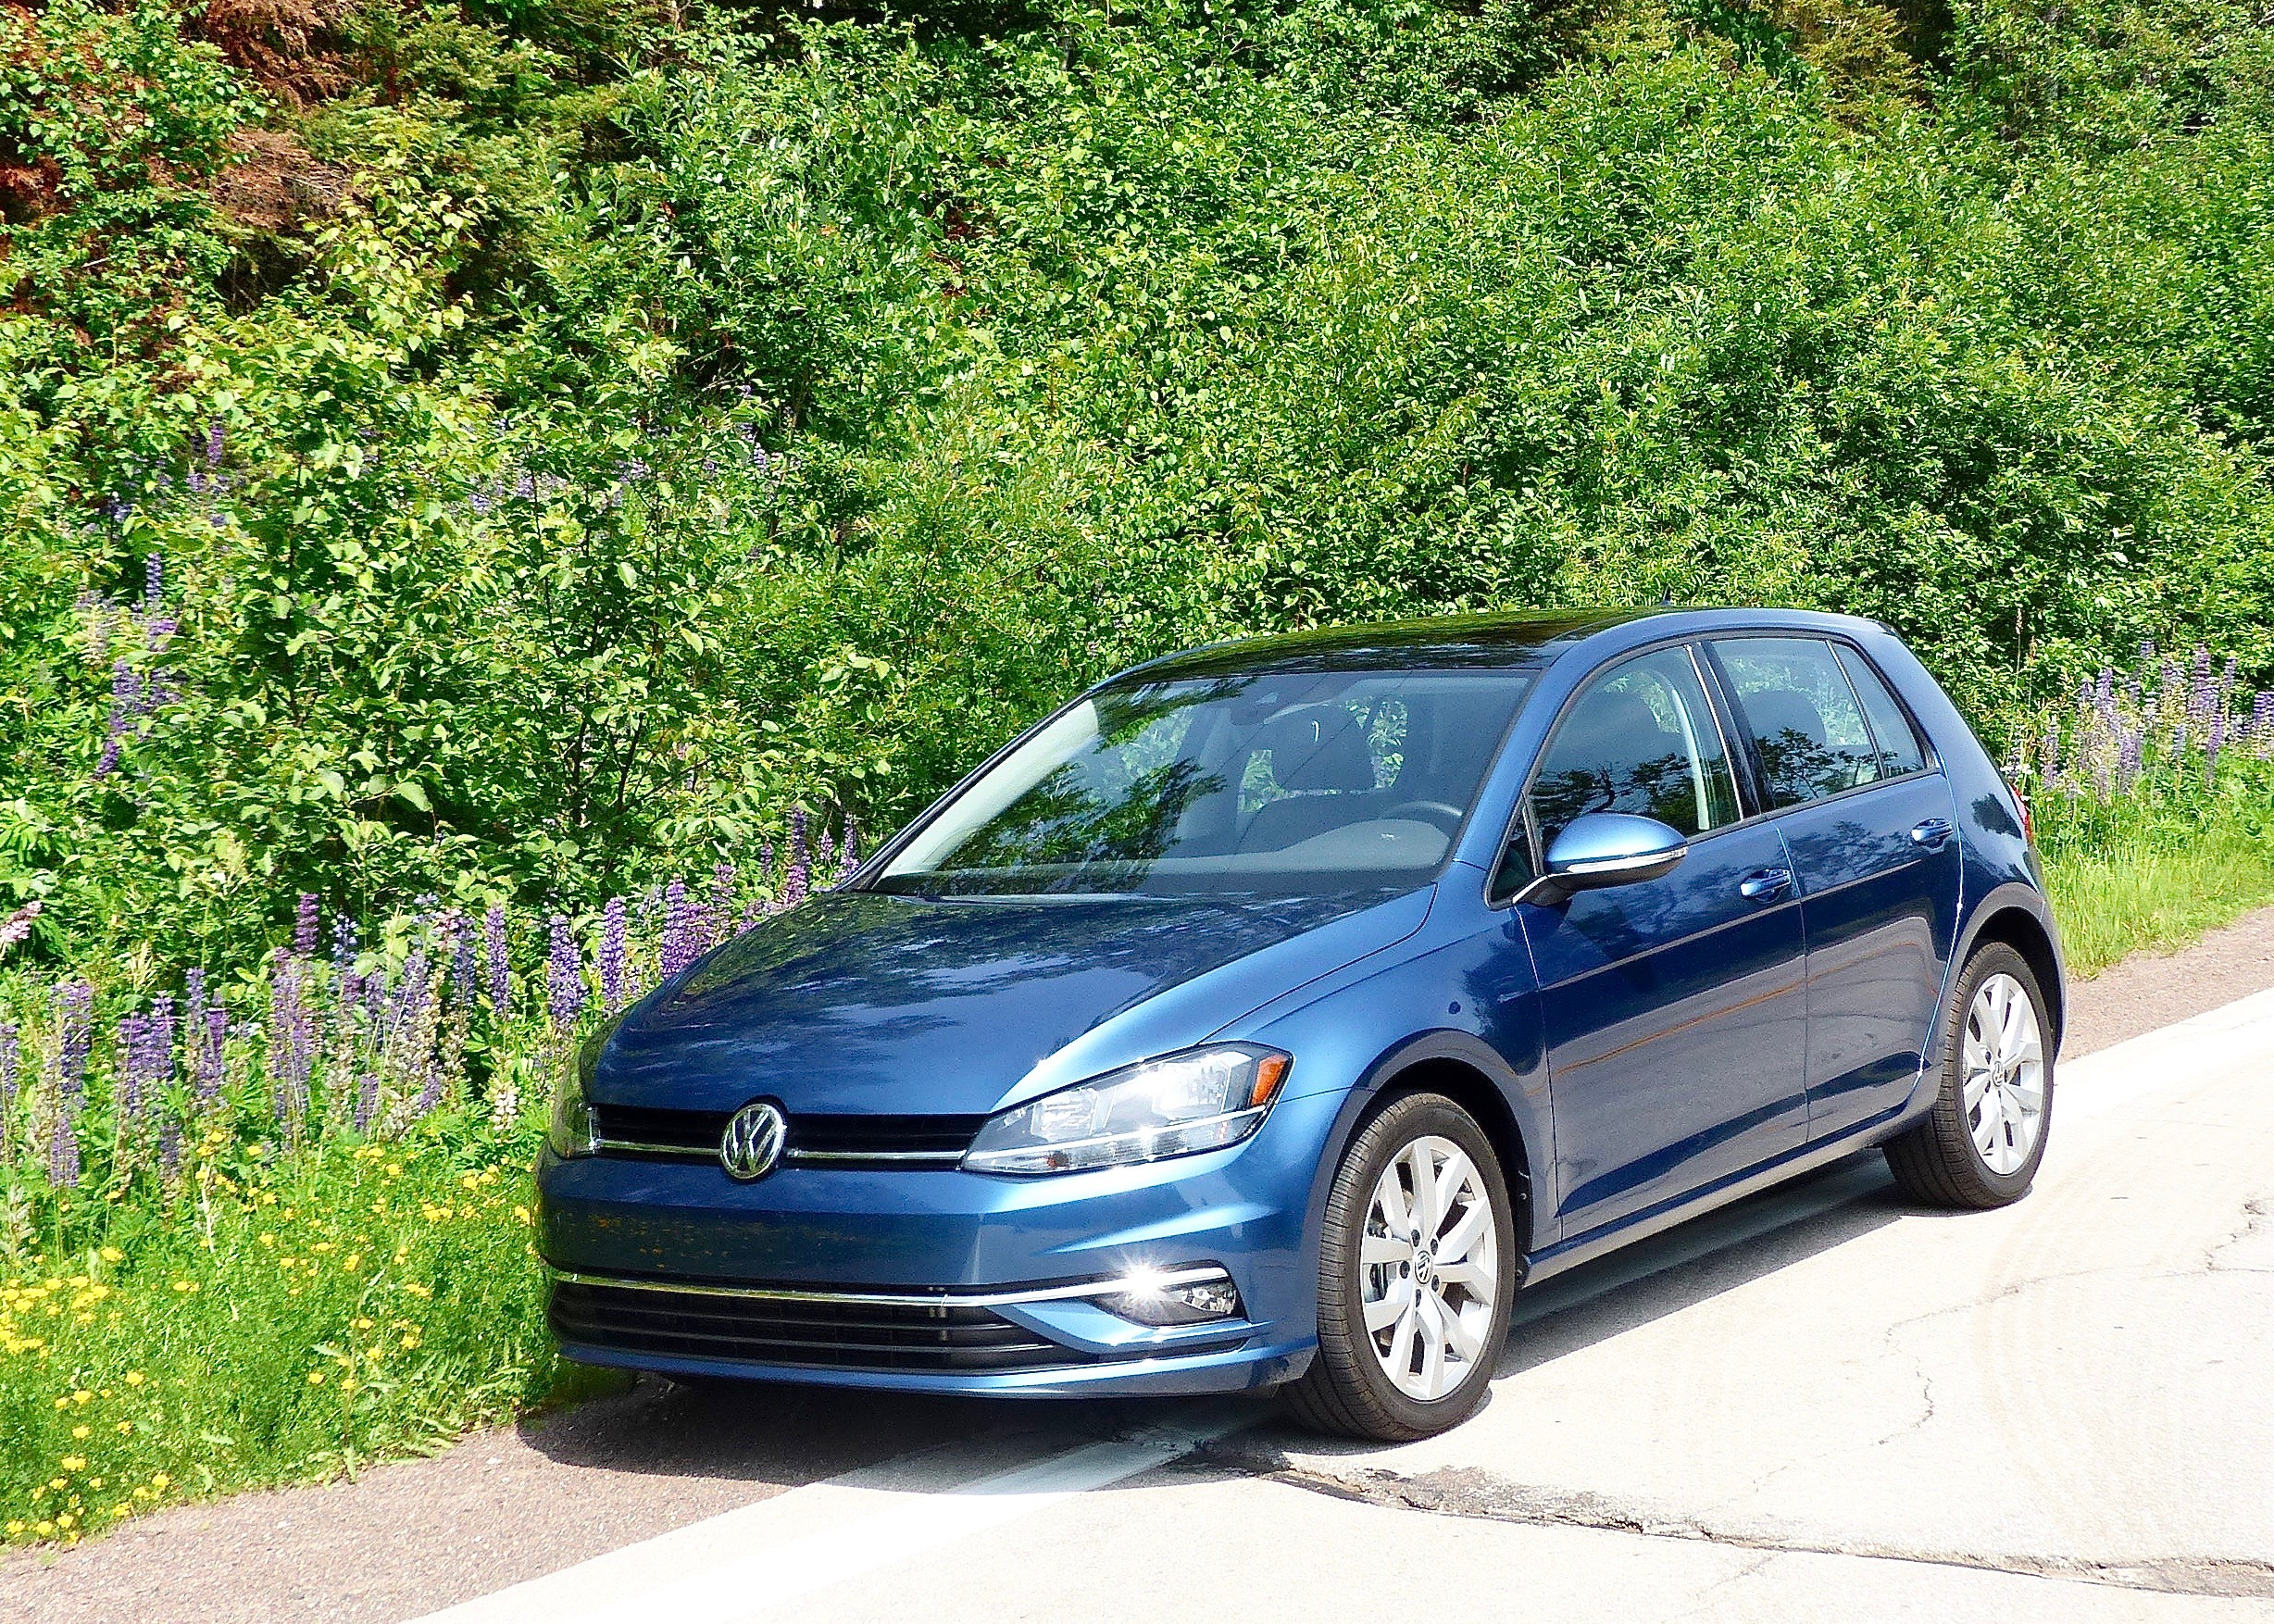 Golf SE nestled amid the late-blooming lupines before challenging potholes.